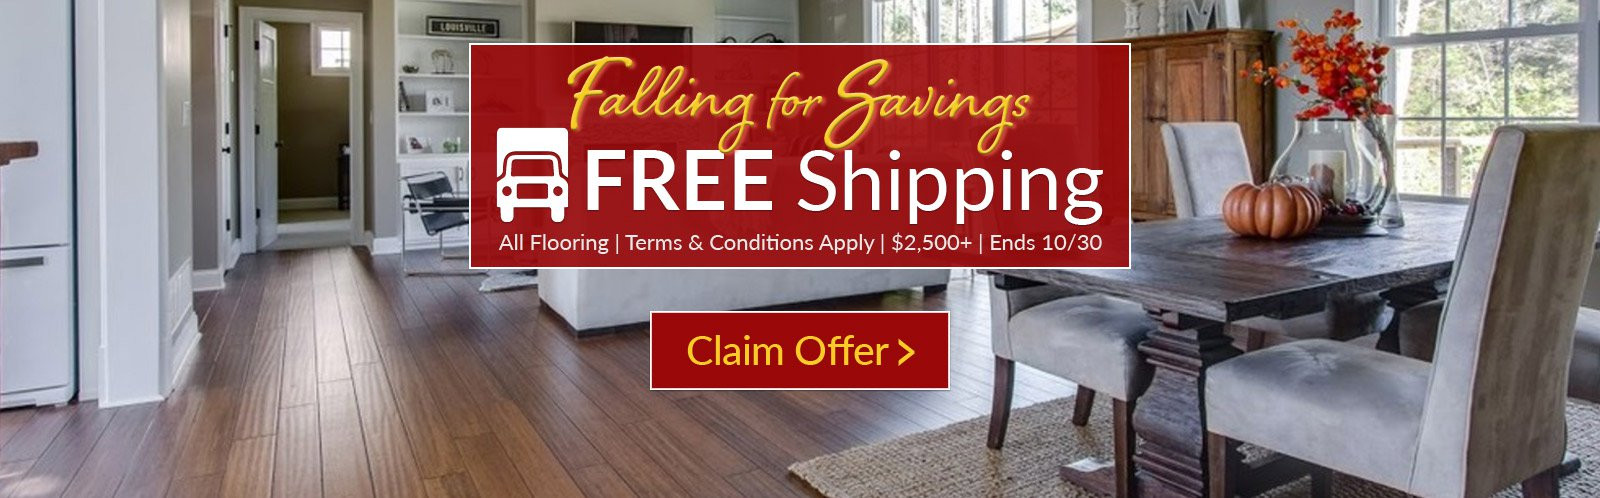 hardwood flooring seattle distributors of green building construction materials and home decor cali bamboo with regard to your shopping cart is empty